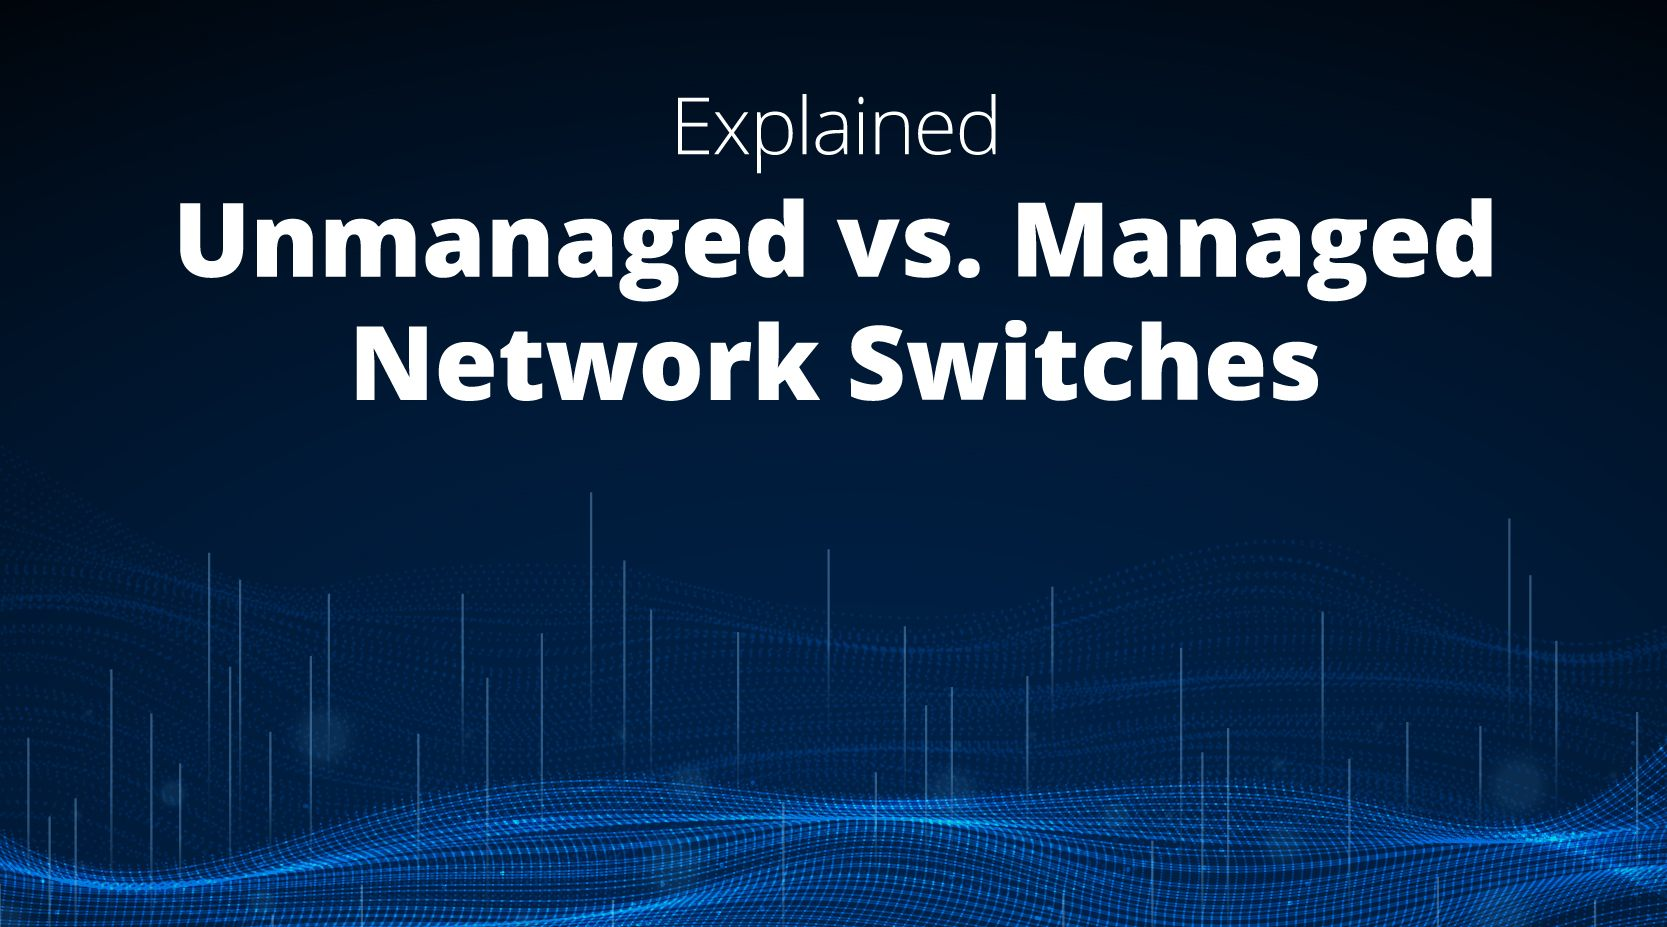 Managed vs. Unmanaged Switches